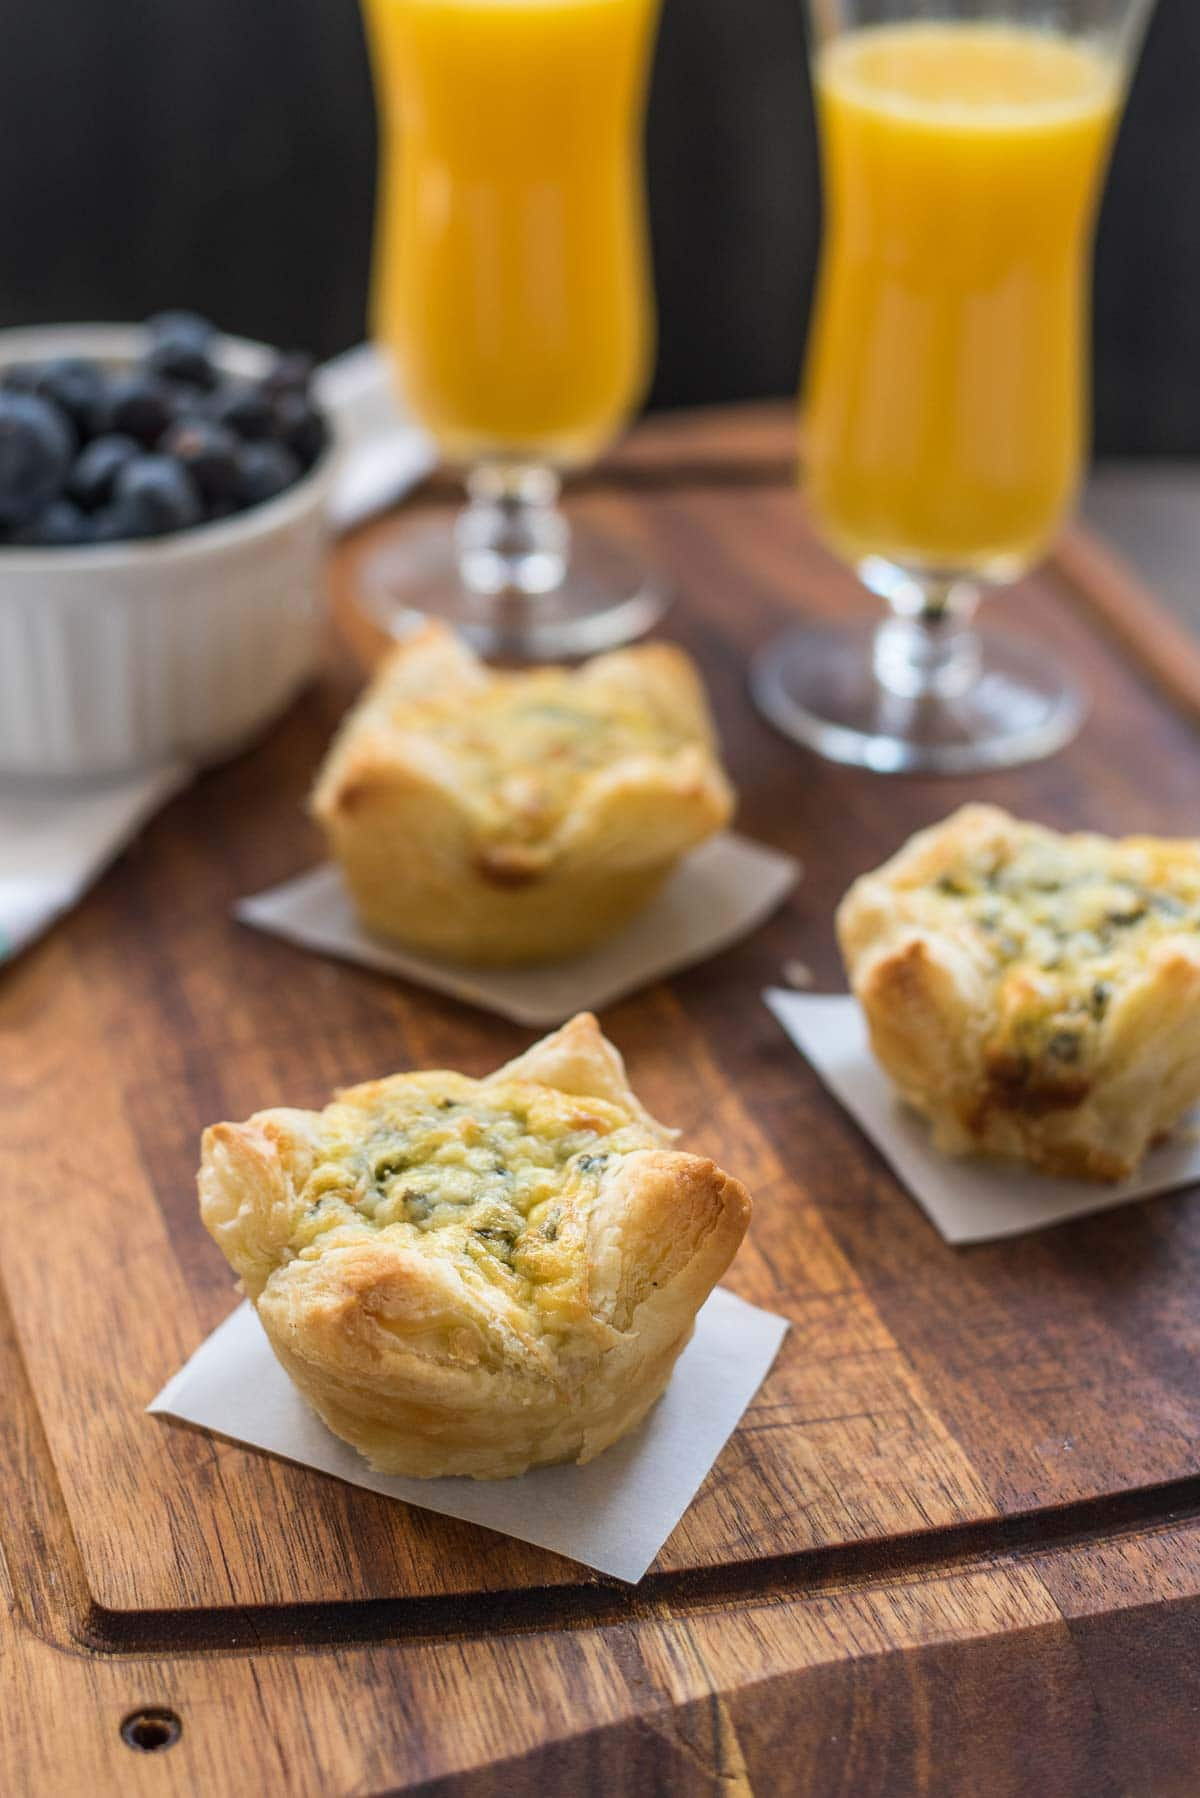 These Spinach Artichoke Egg Tarts are so lovely and delicious and are made with only 5 ingredients!